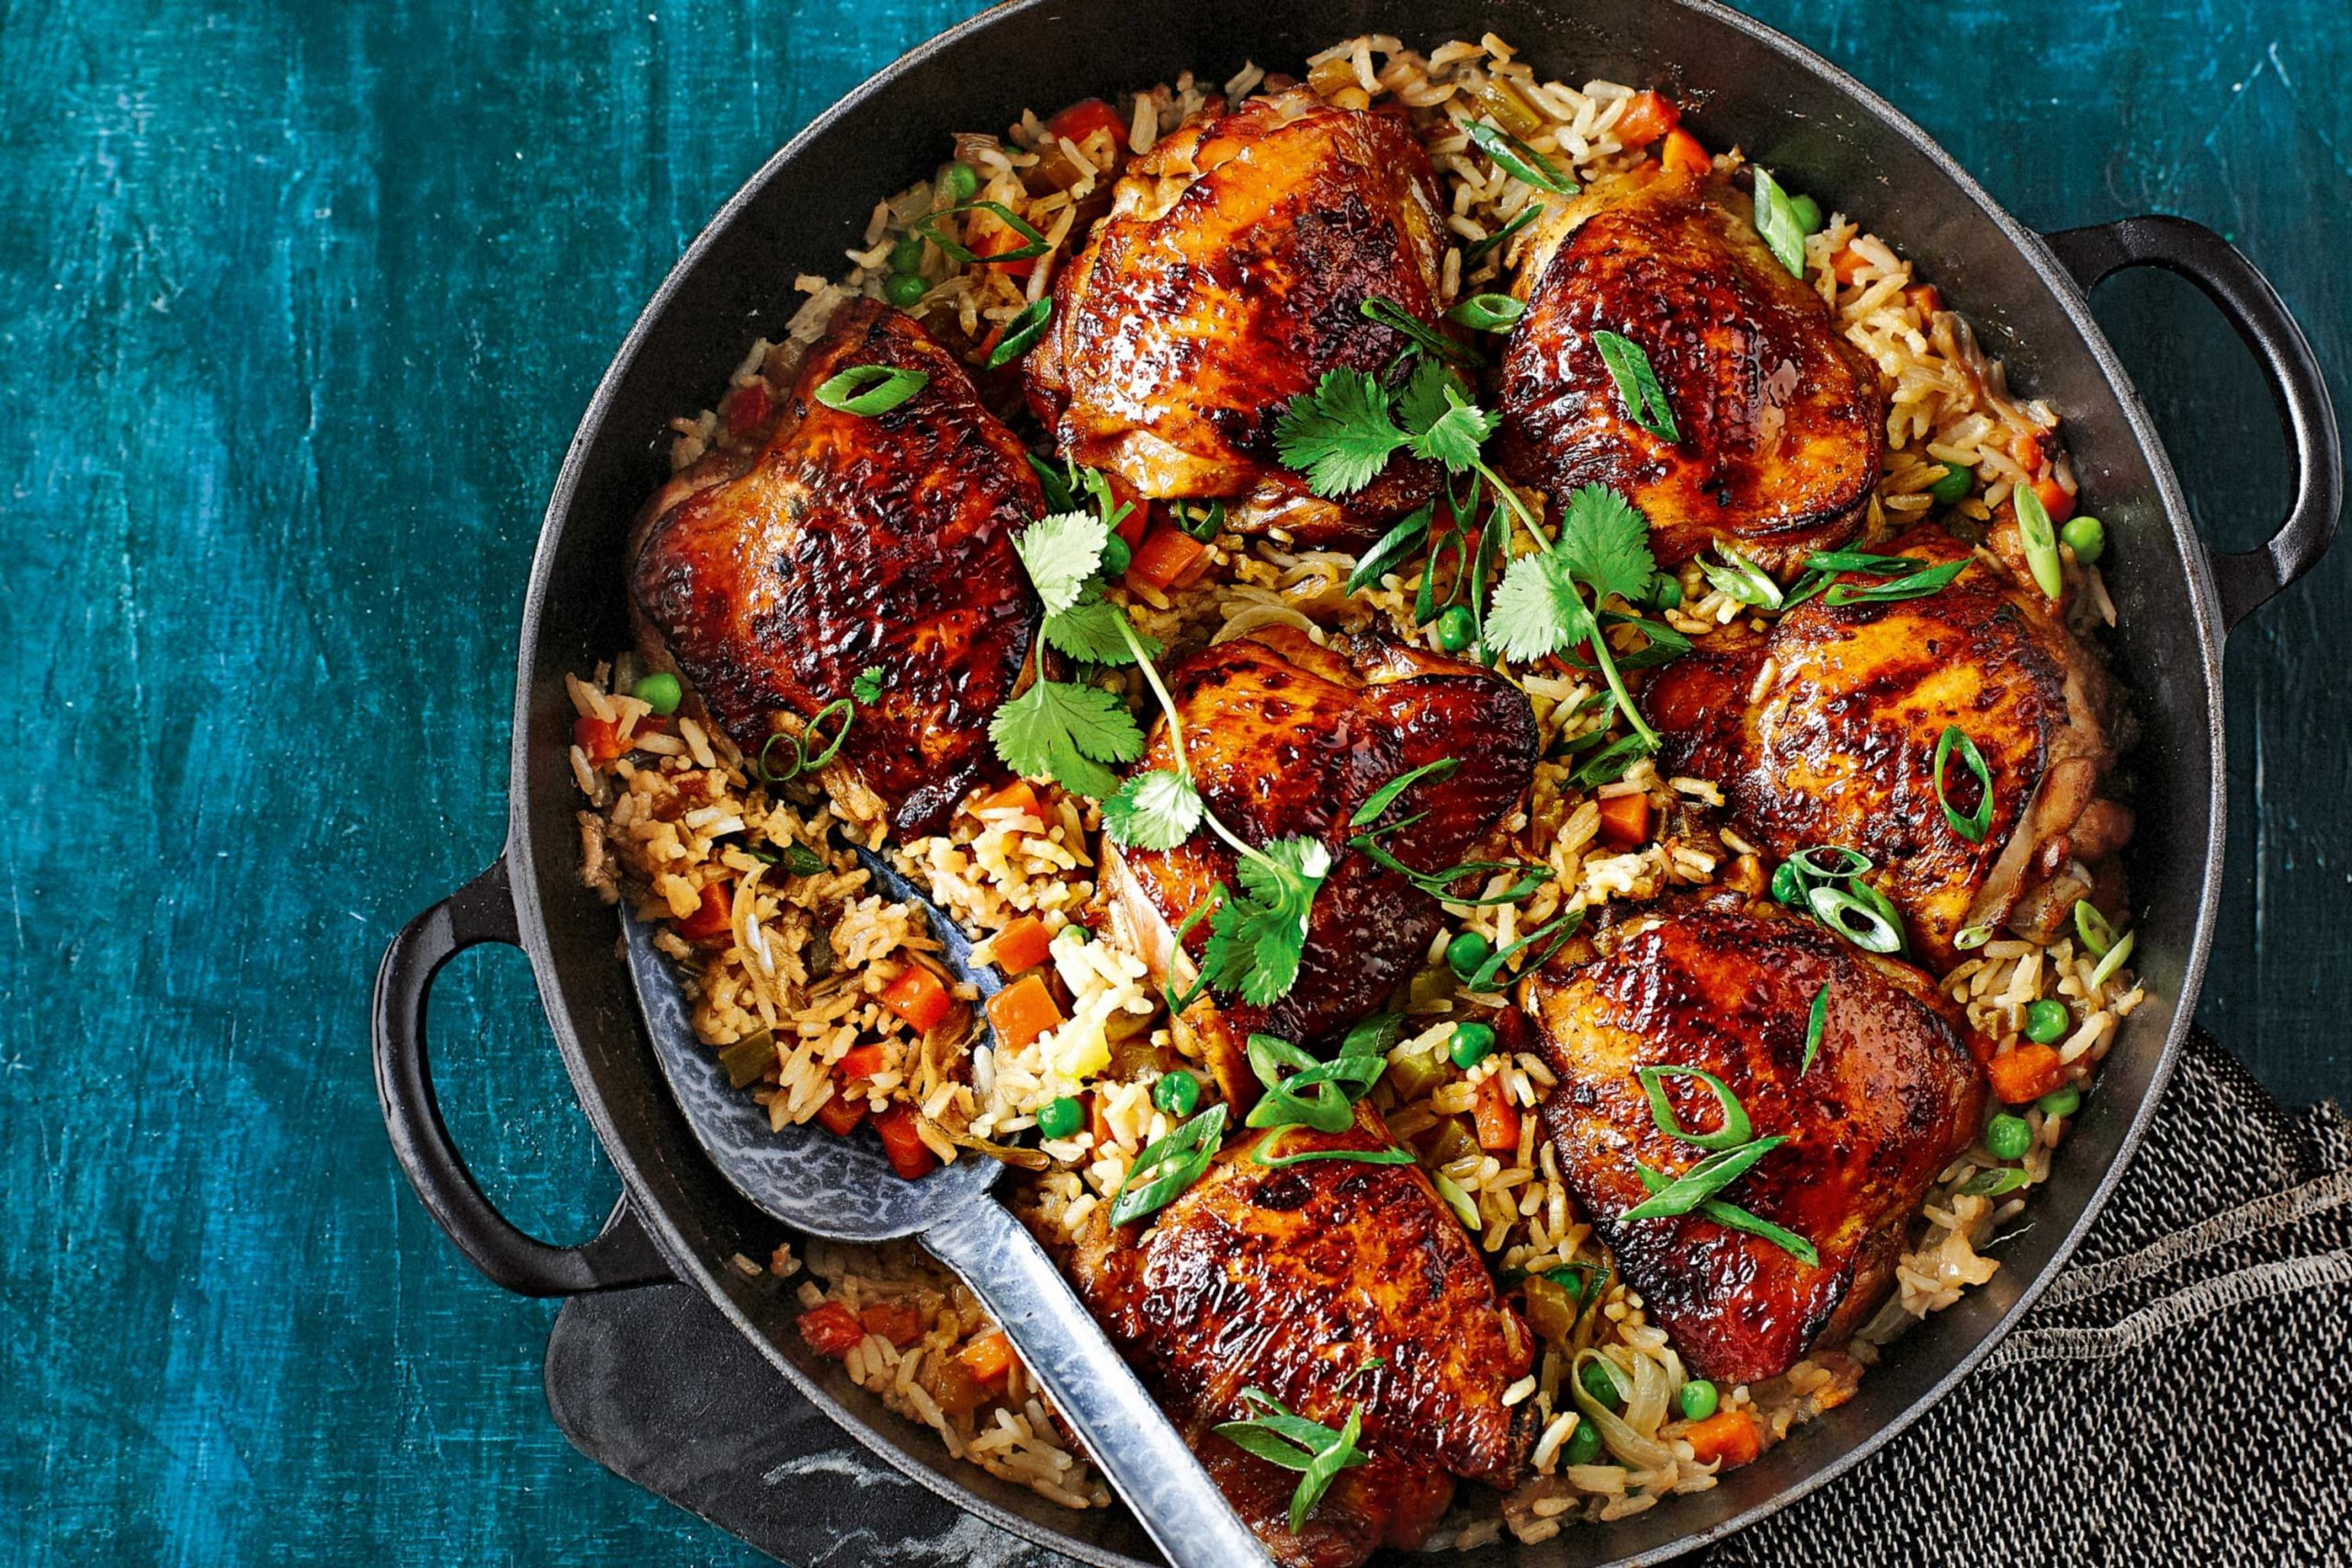 How to make one pot chicken and rice